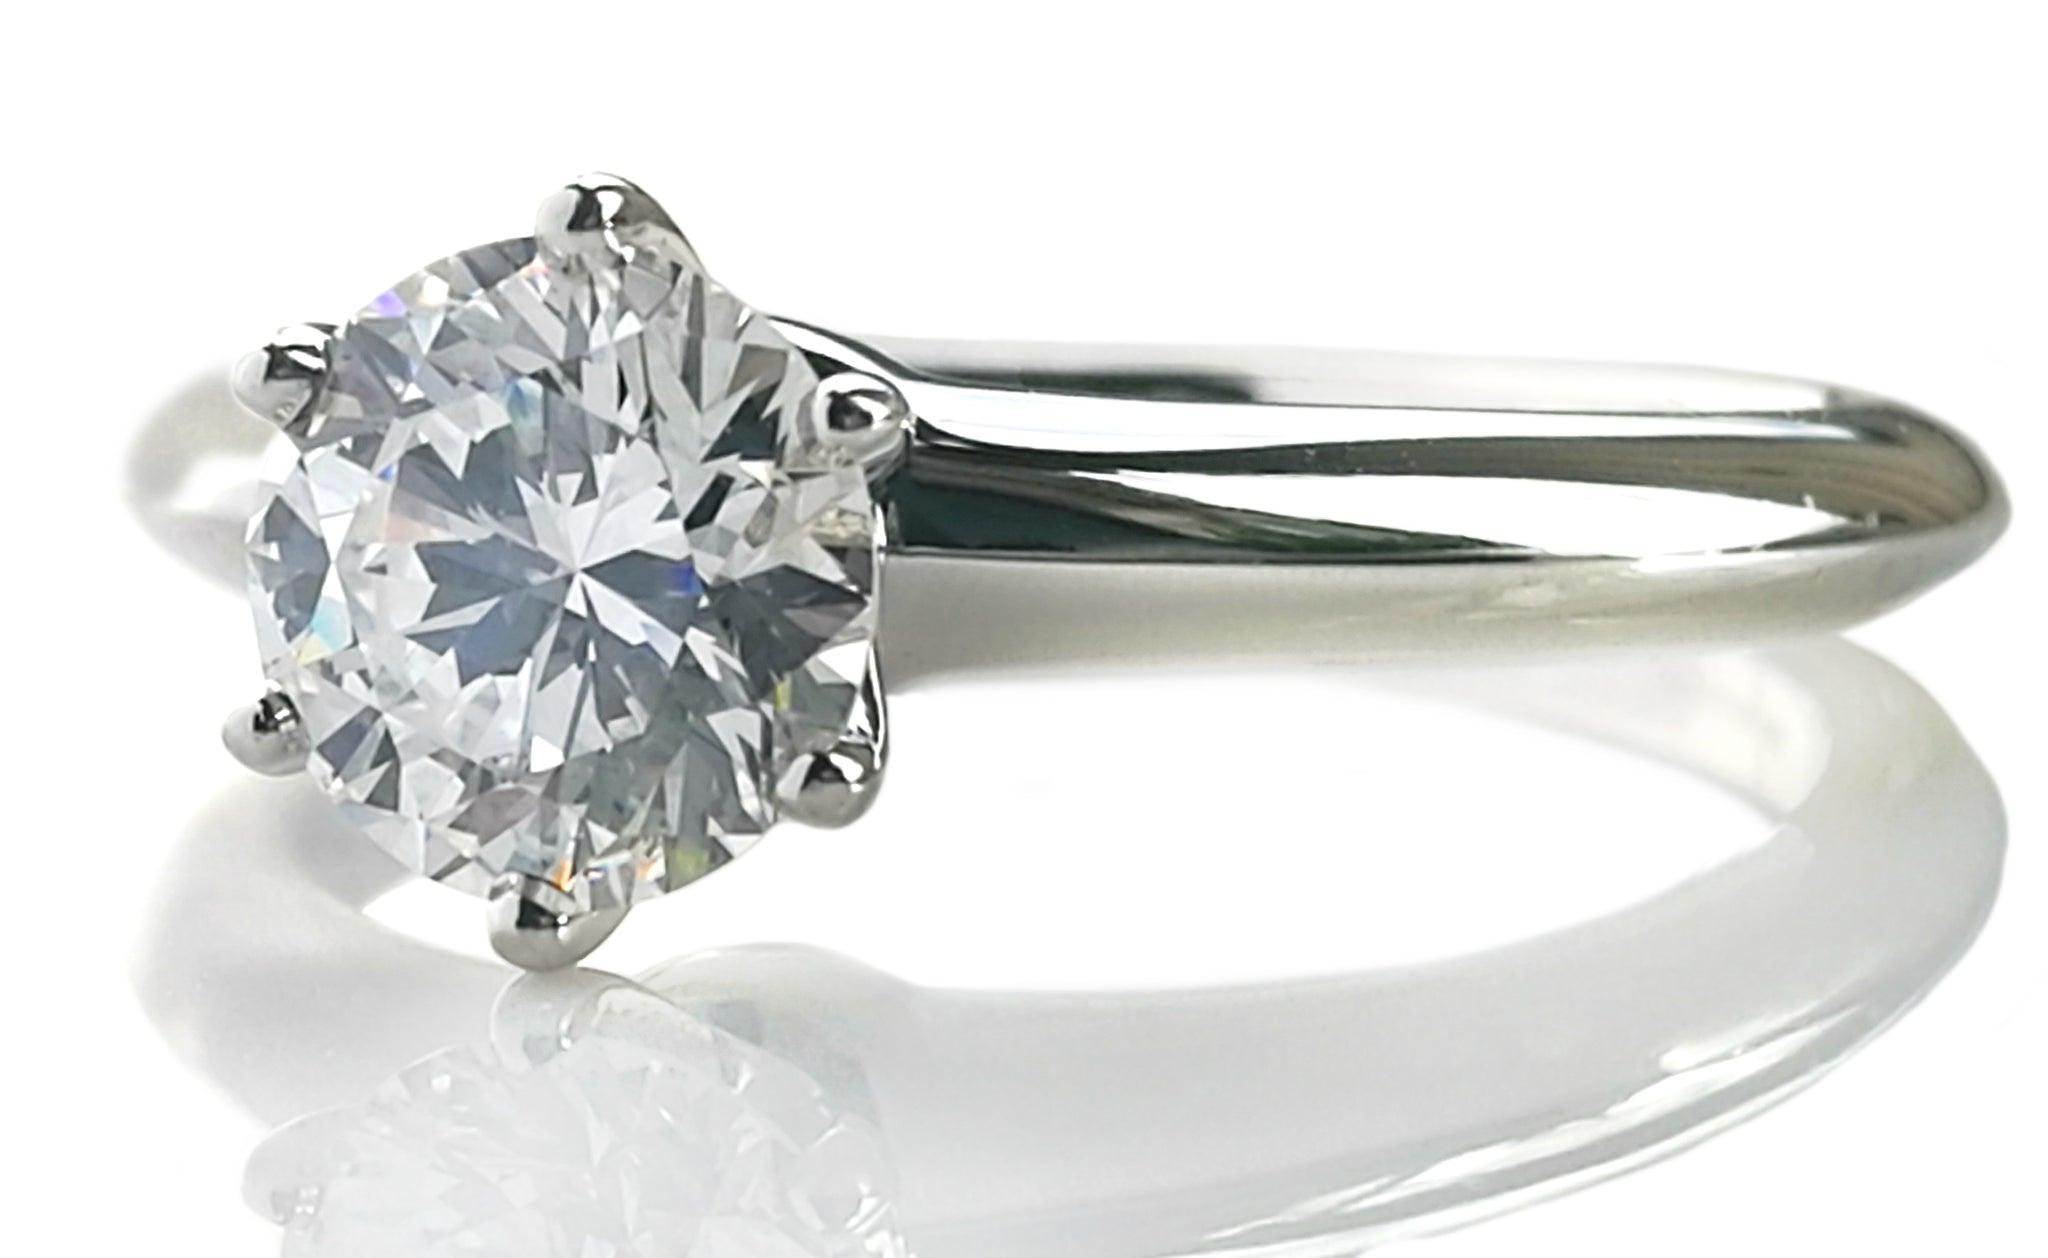 ba344e04b Tiffany & Co. 0.89ct E/VVS2 Triple-X Round Brilliant Diamond Engagement Ring